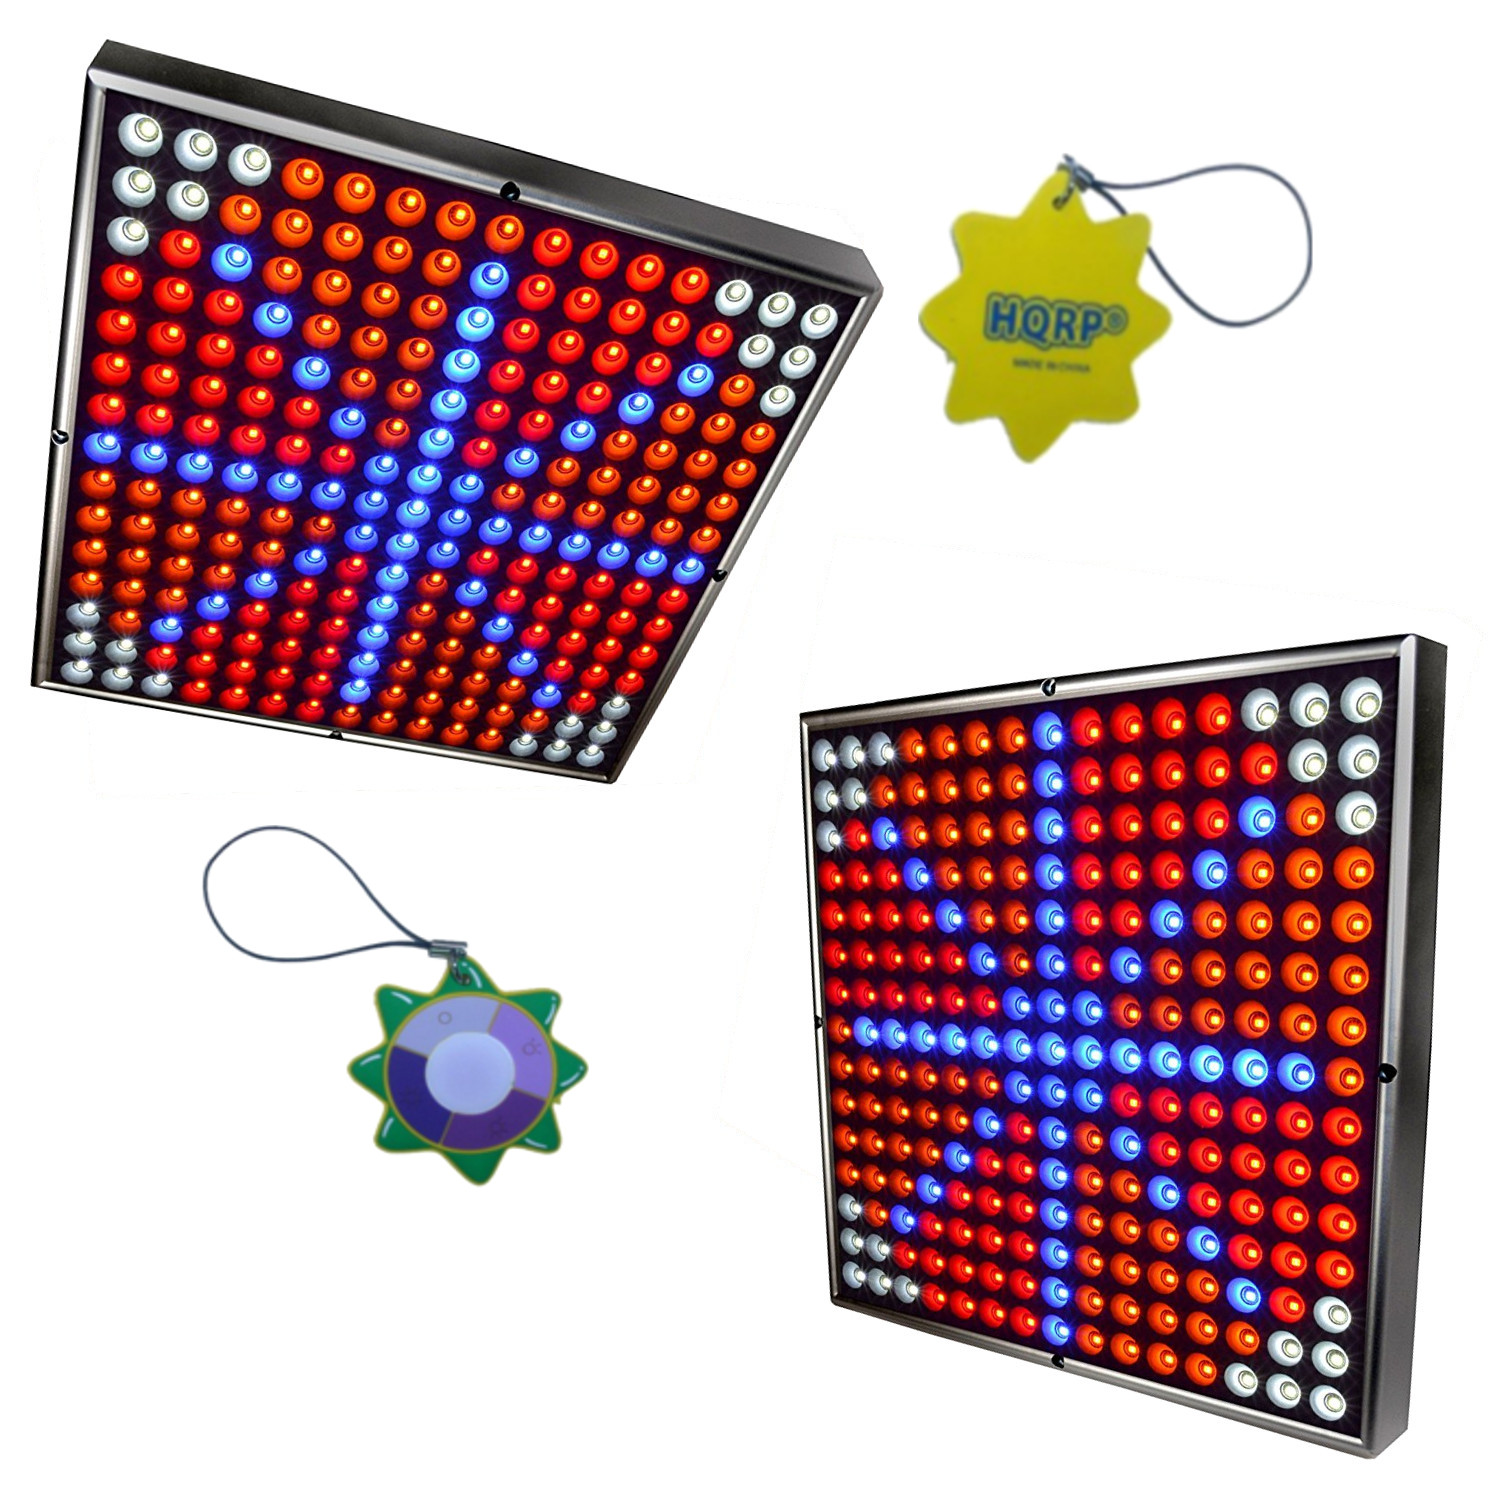 "HQRP 90W Multicolor 2x 12"" Square 450 LED Grow Light Syst..."